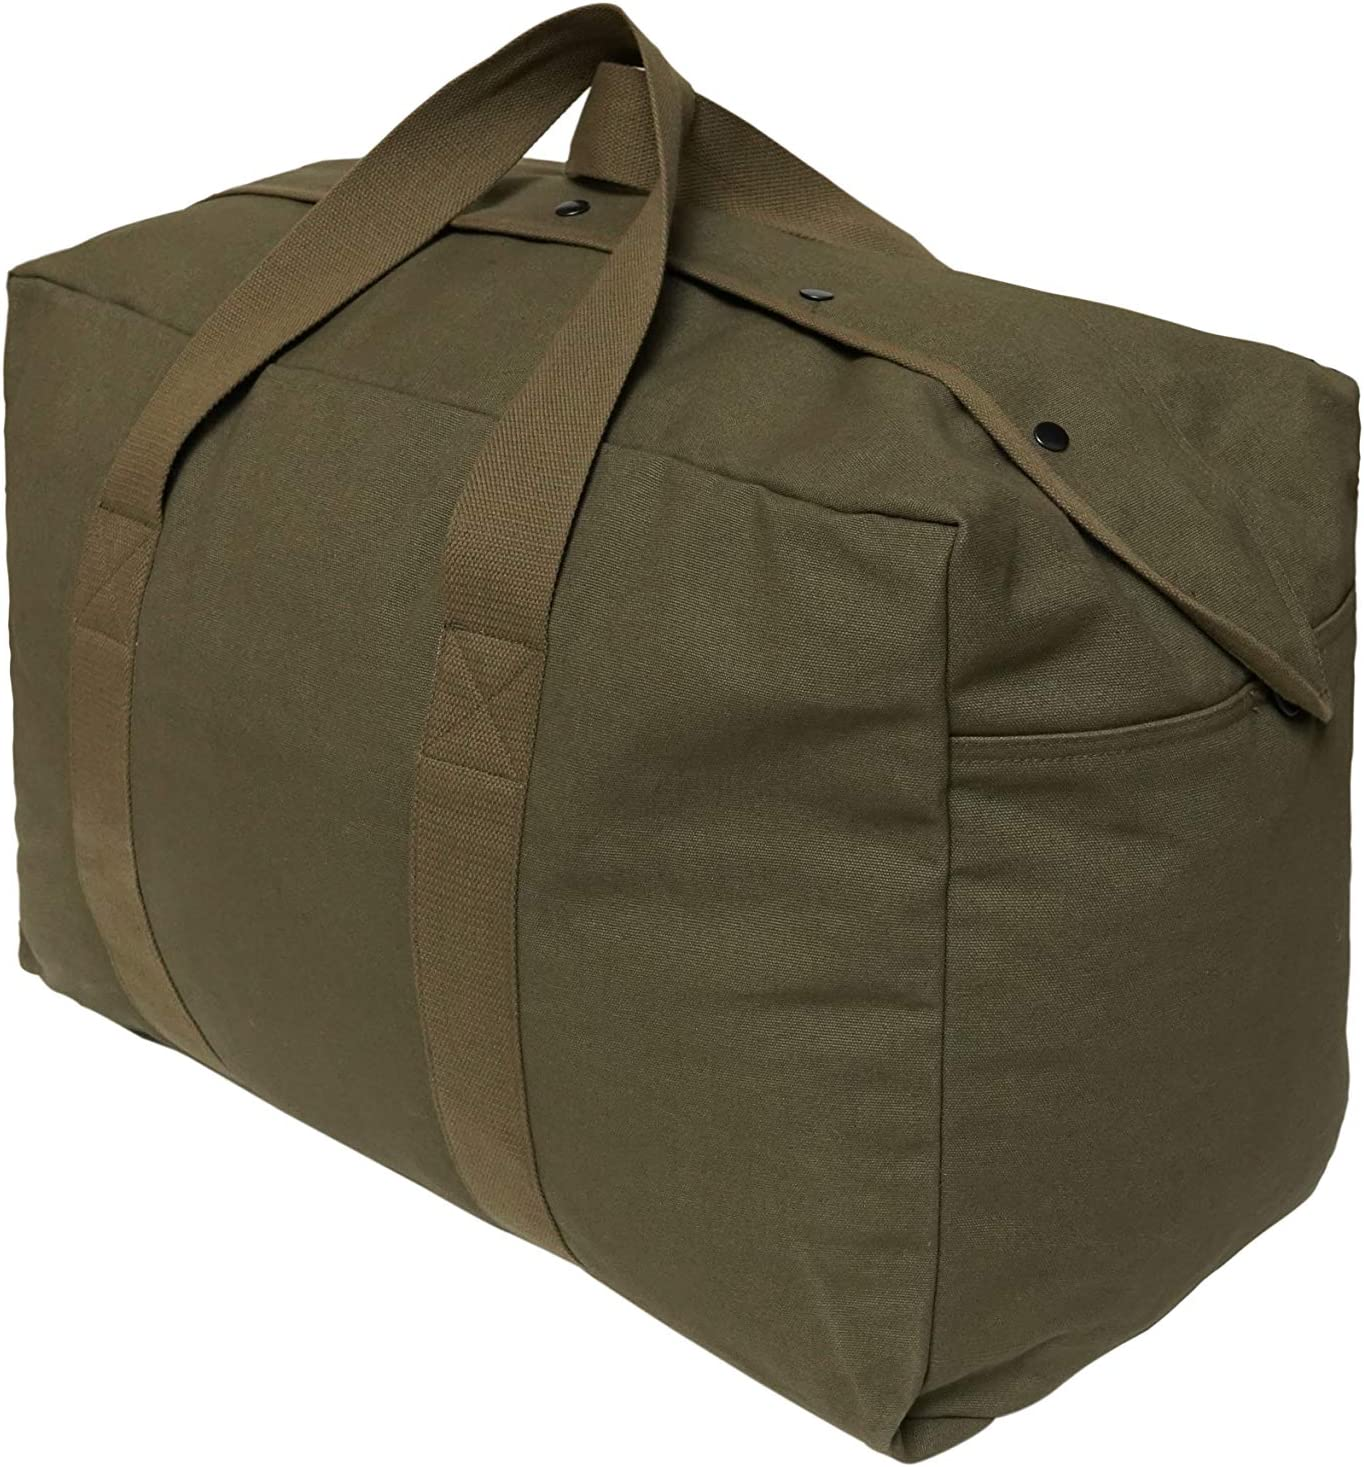 Military Inspired Canvas Cargo Army Duffle Top Load Bag with Snap-Closure Storm Flap Multipurpose Canvas Top Load Bag WHITEDUCK Hoplite Heavy Duty Canvas Duffel Bag Extra Large Canvas Duffle Bag